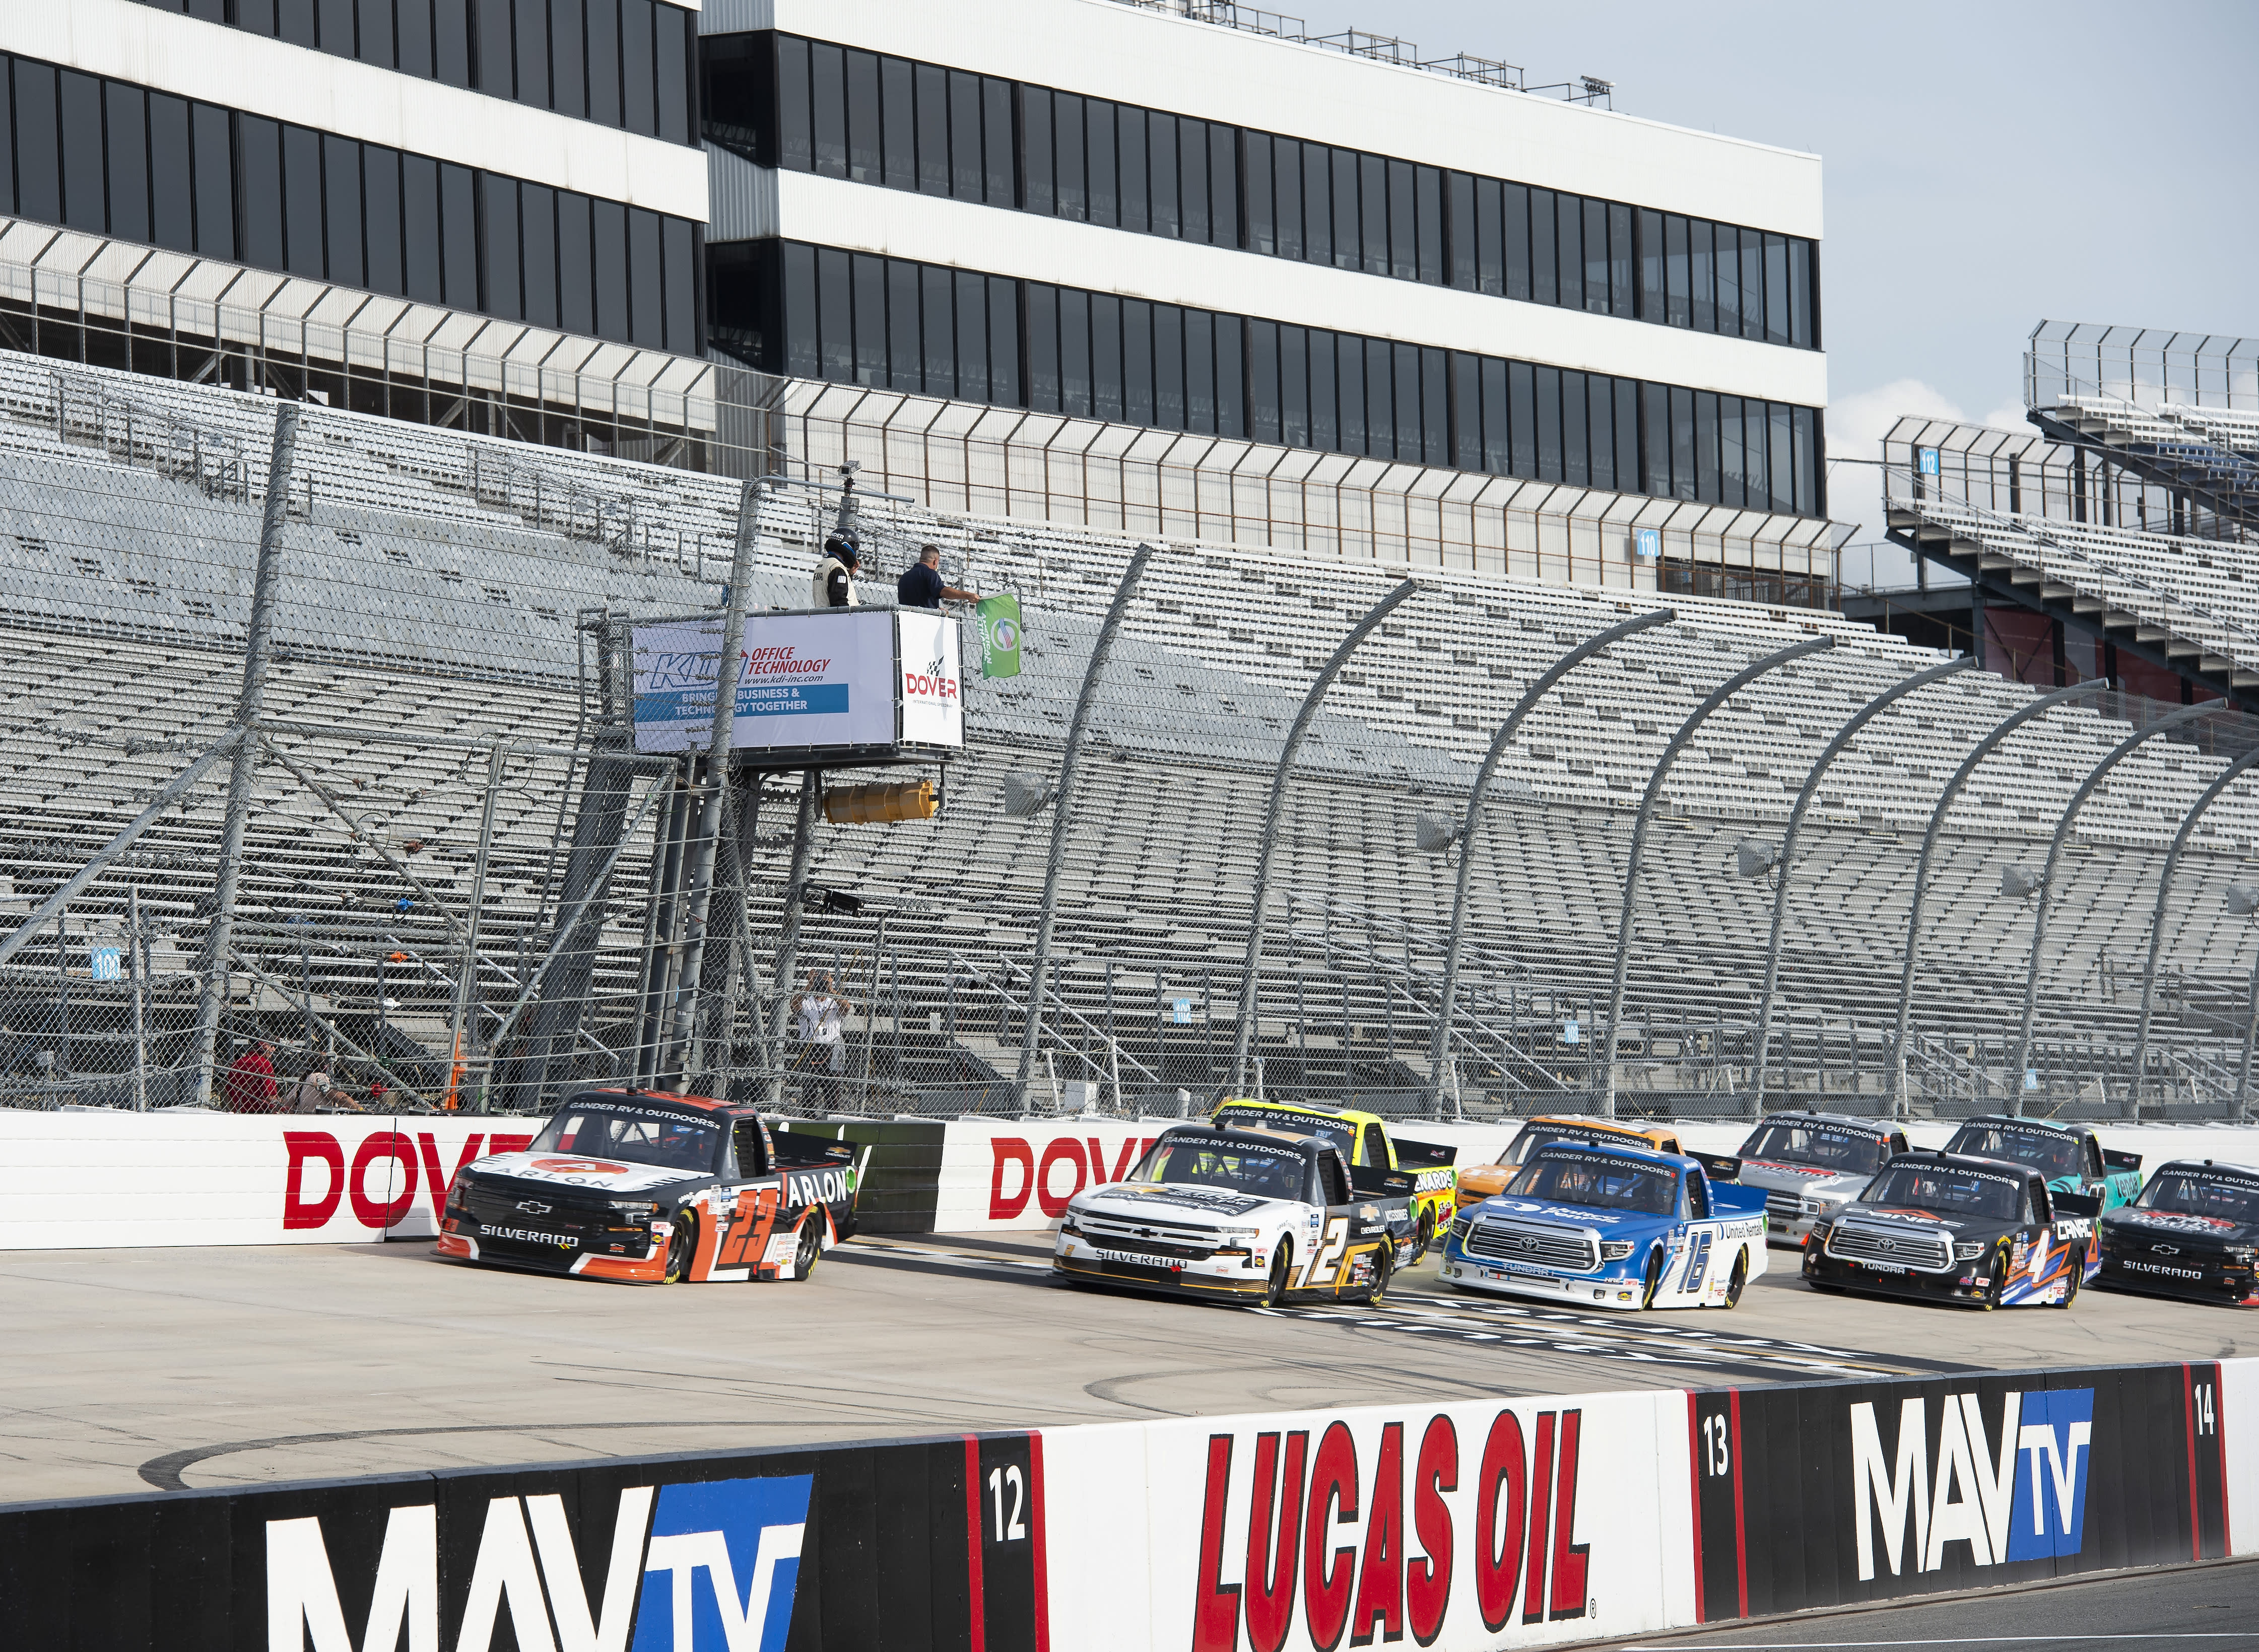 The field takes the green flag at the start of the NASCAR Truck Series auto race at Dover International Speedway, Friday, Aug. 21, 2020, in Dover, Del. (AP Photo/Jason Minto)